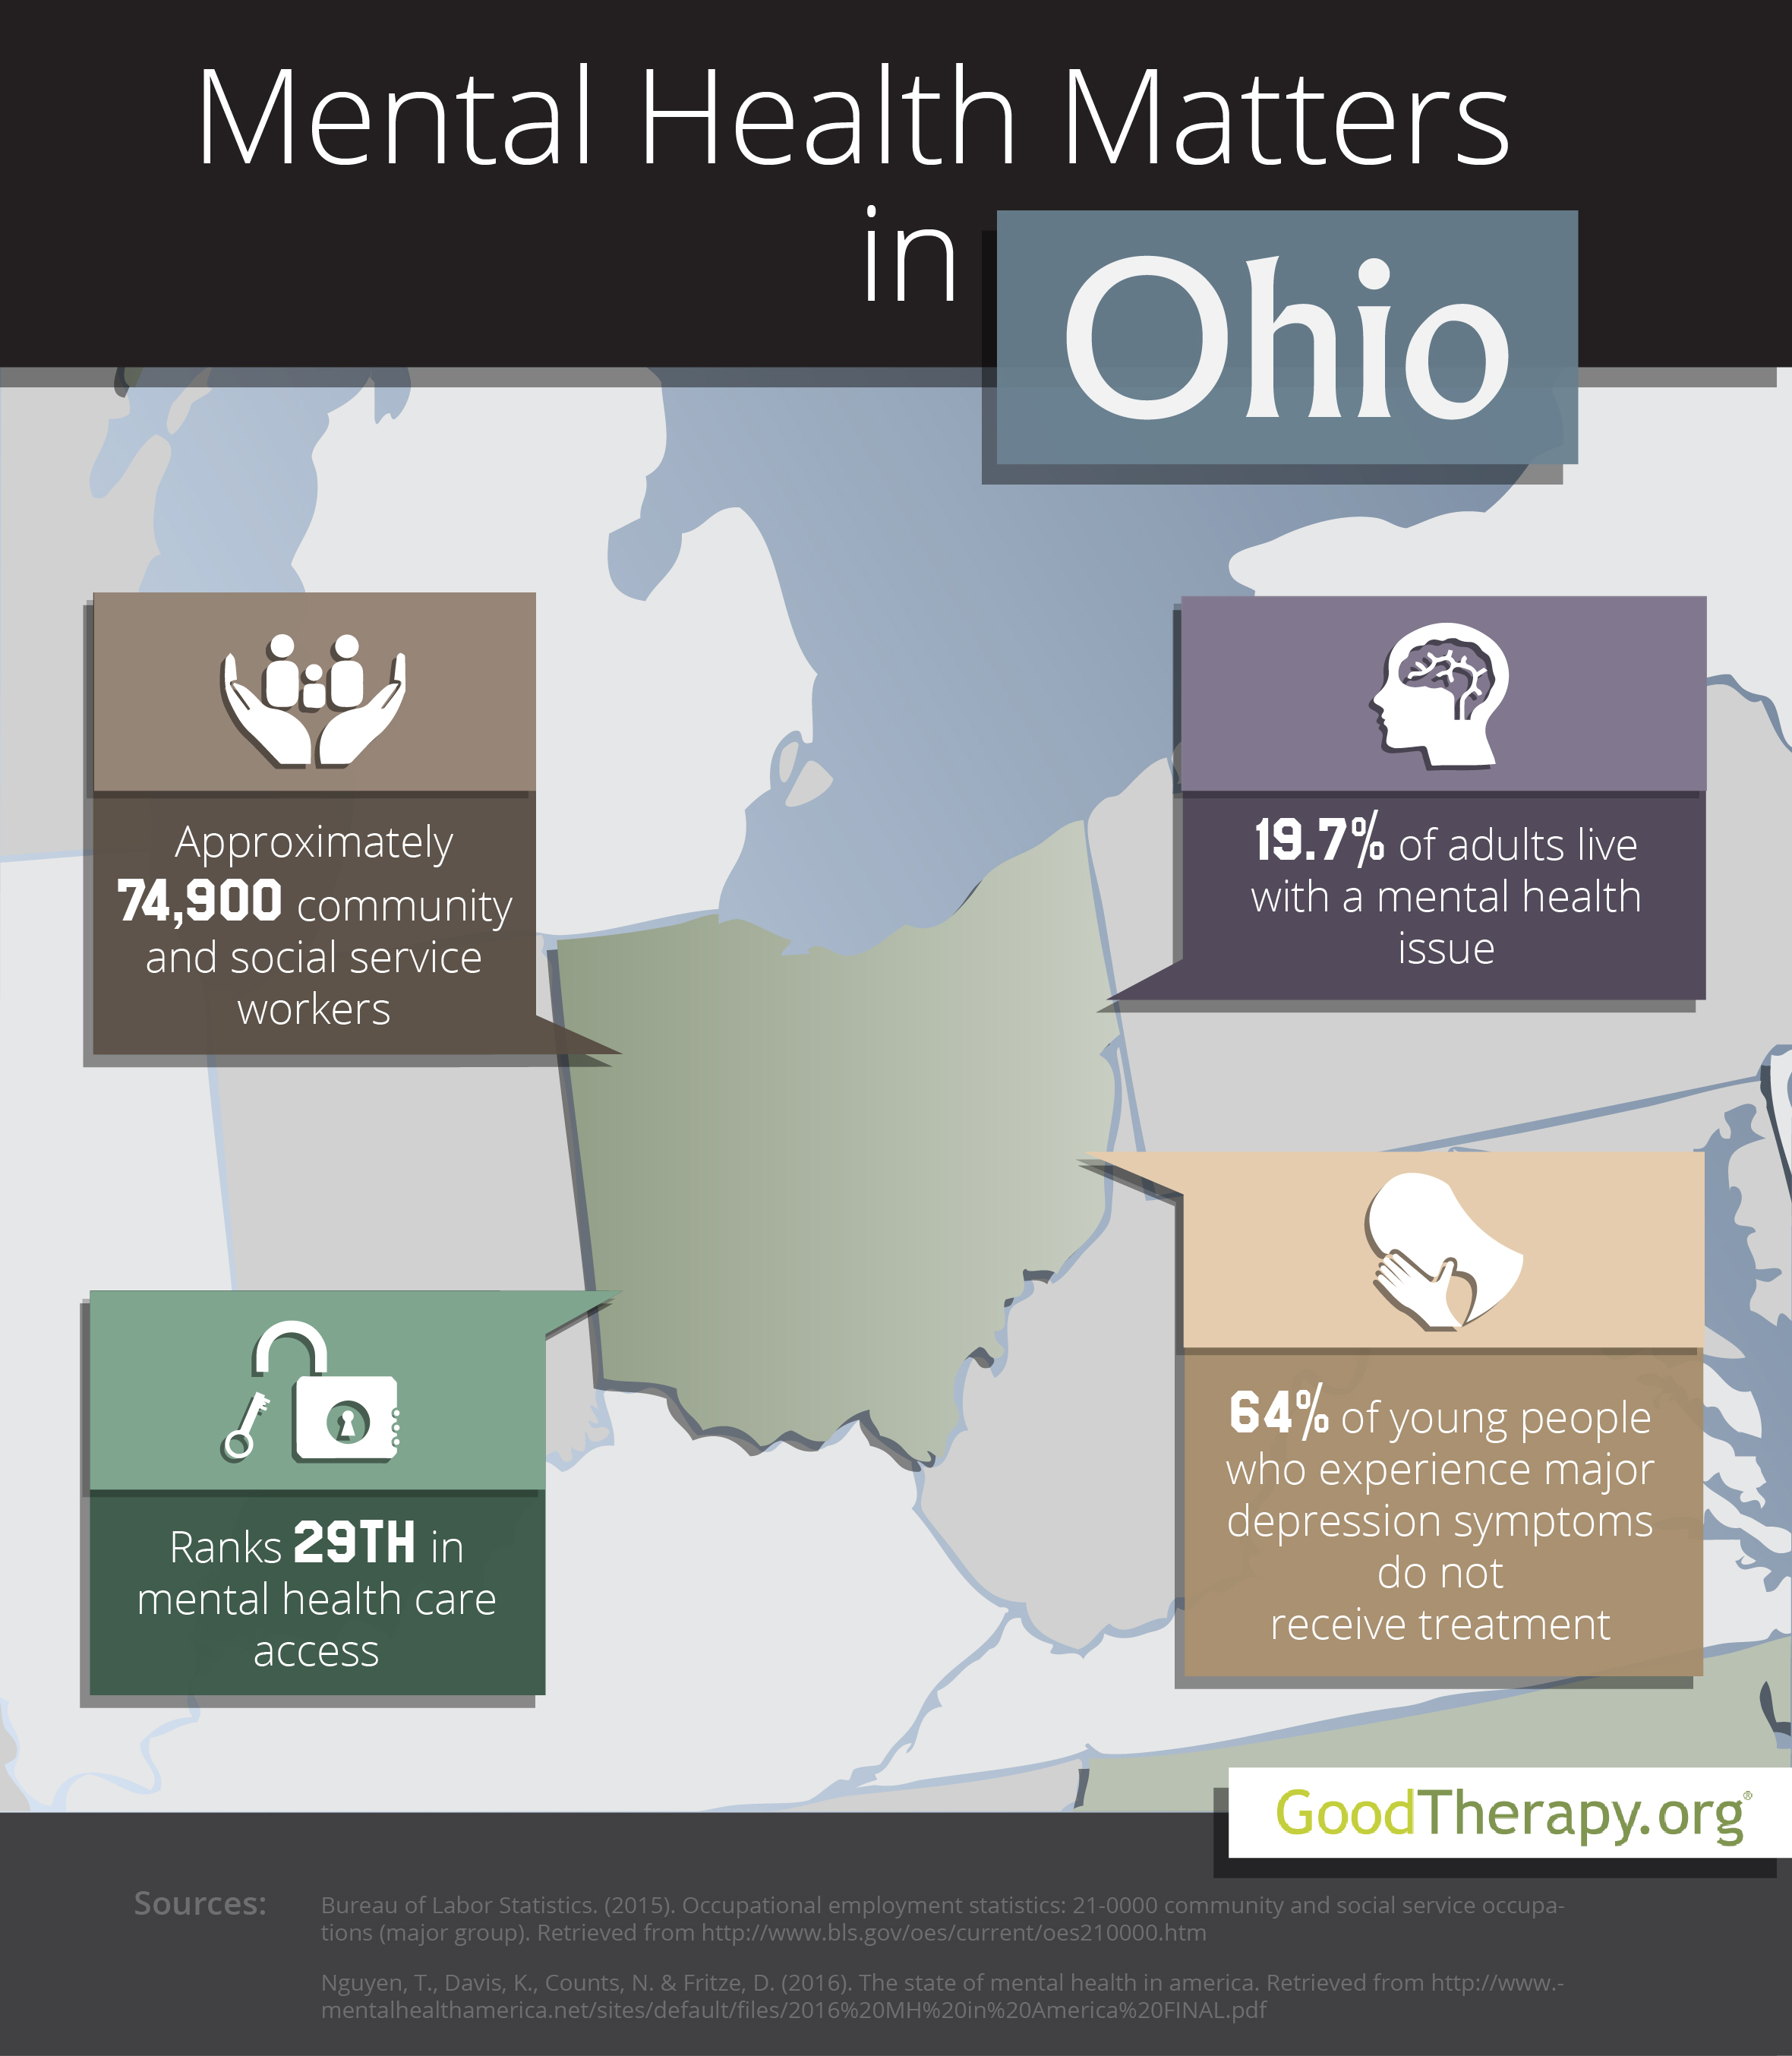 Ohio Mental Health Statistics